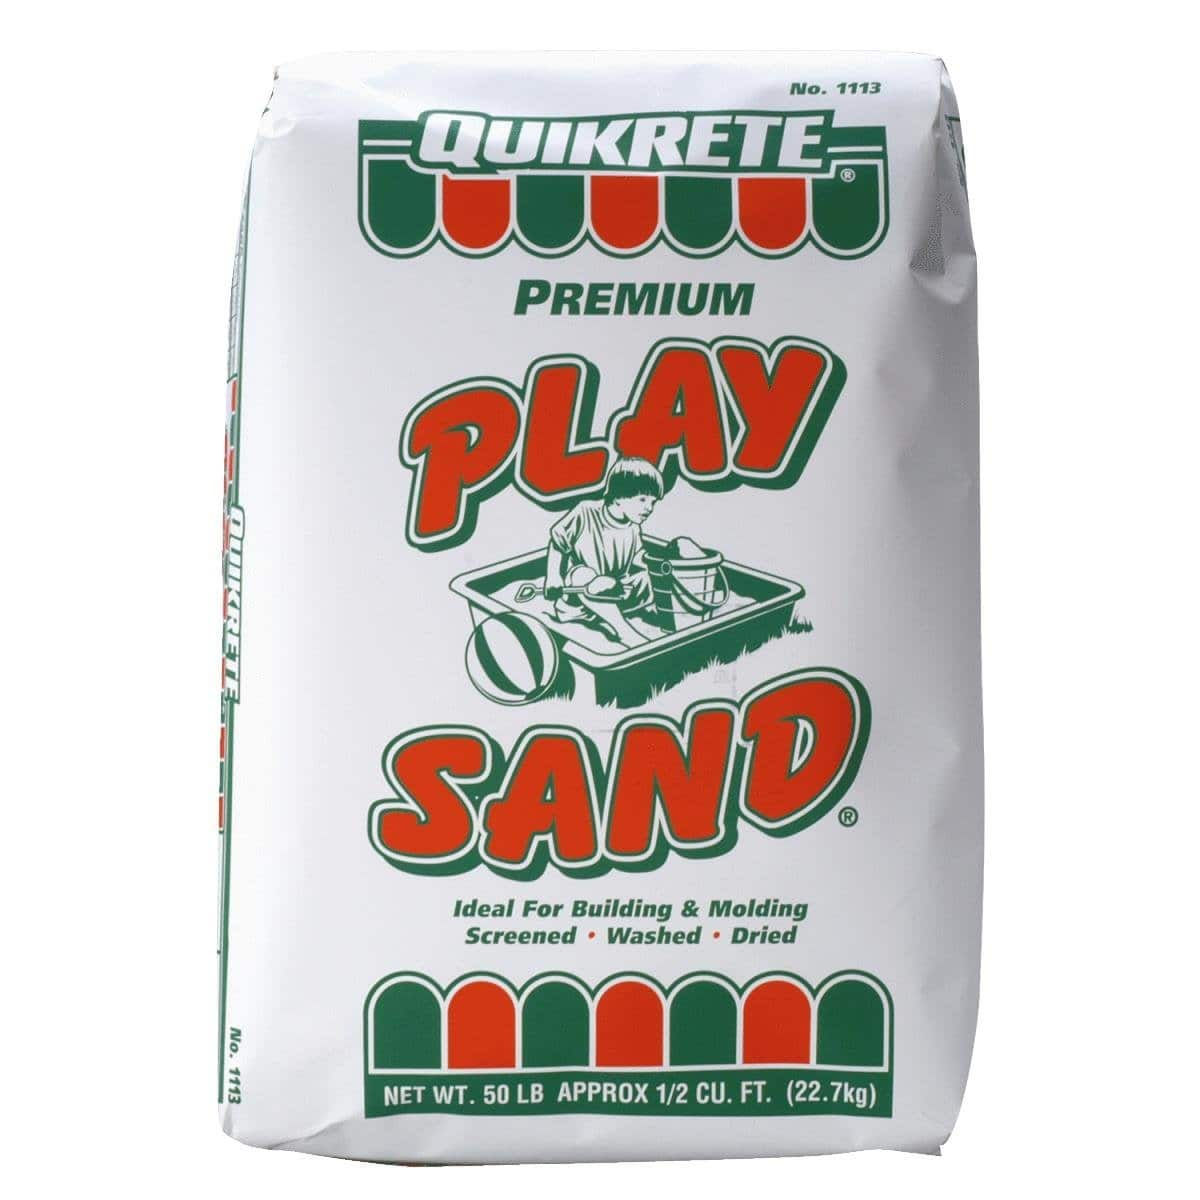 QUIKRETE 50-lbs Play Sand - $2.50 at Lowes and Home Depot